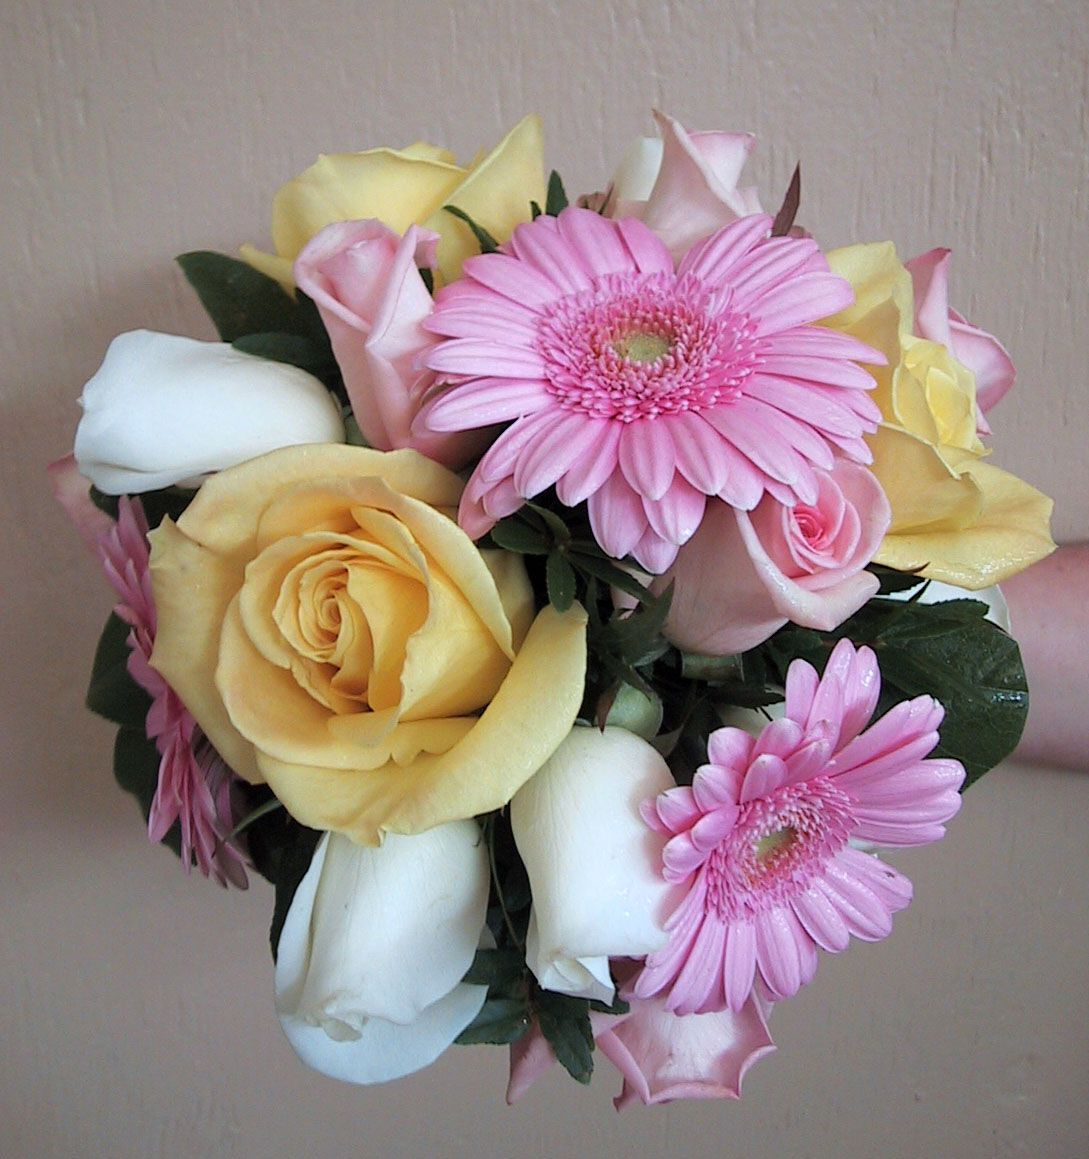 Posy Wedding Bouquet With White Cream And Light Pink Roses Gerbera Daisies Floral